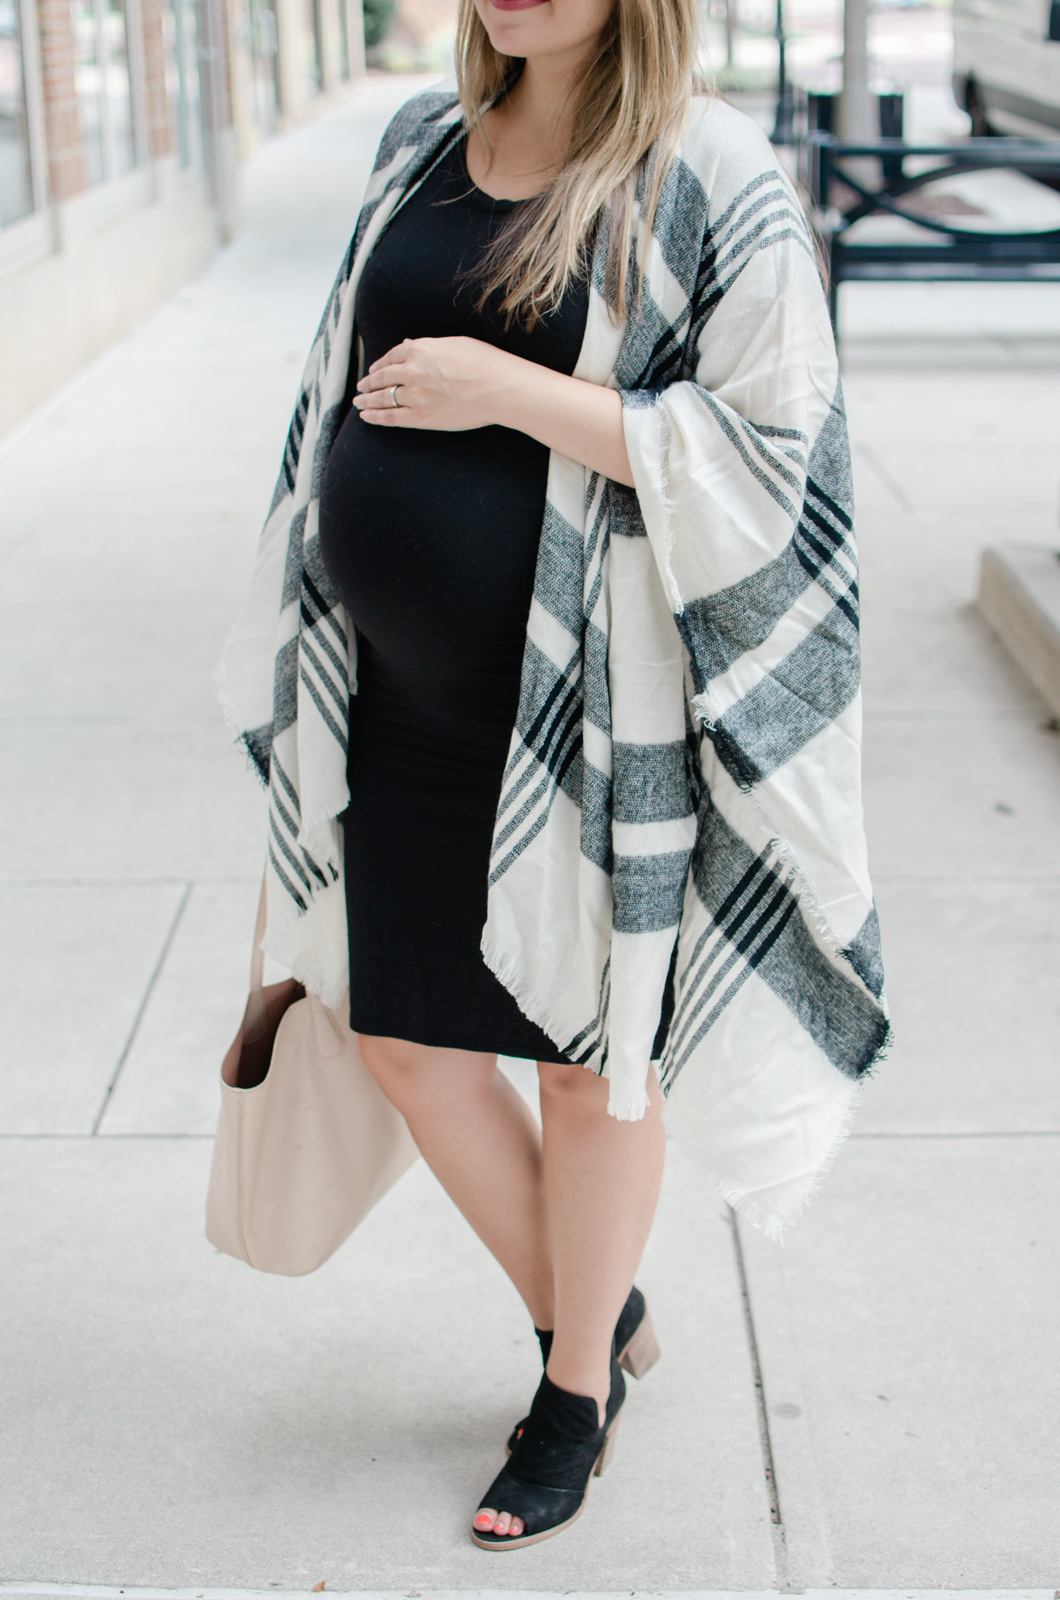 cute, casual fall pregnancy style - how to dress for a fall pregnancy | bylaurenm.com